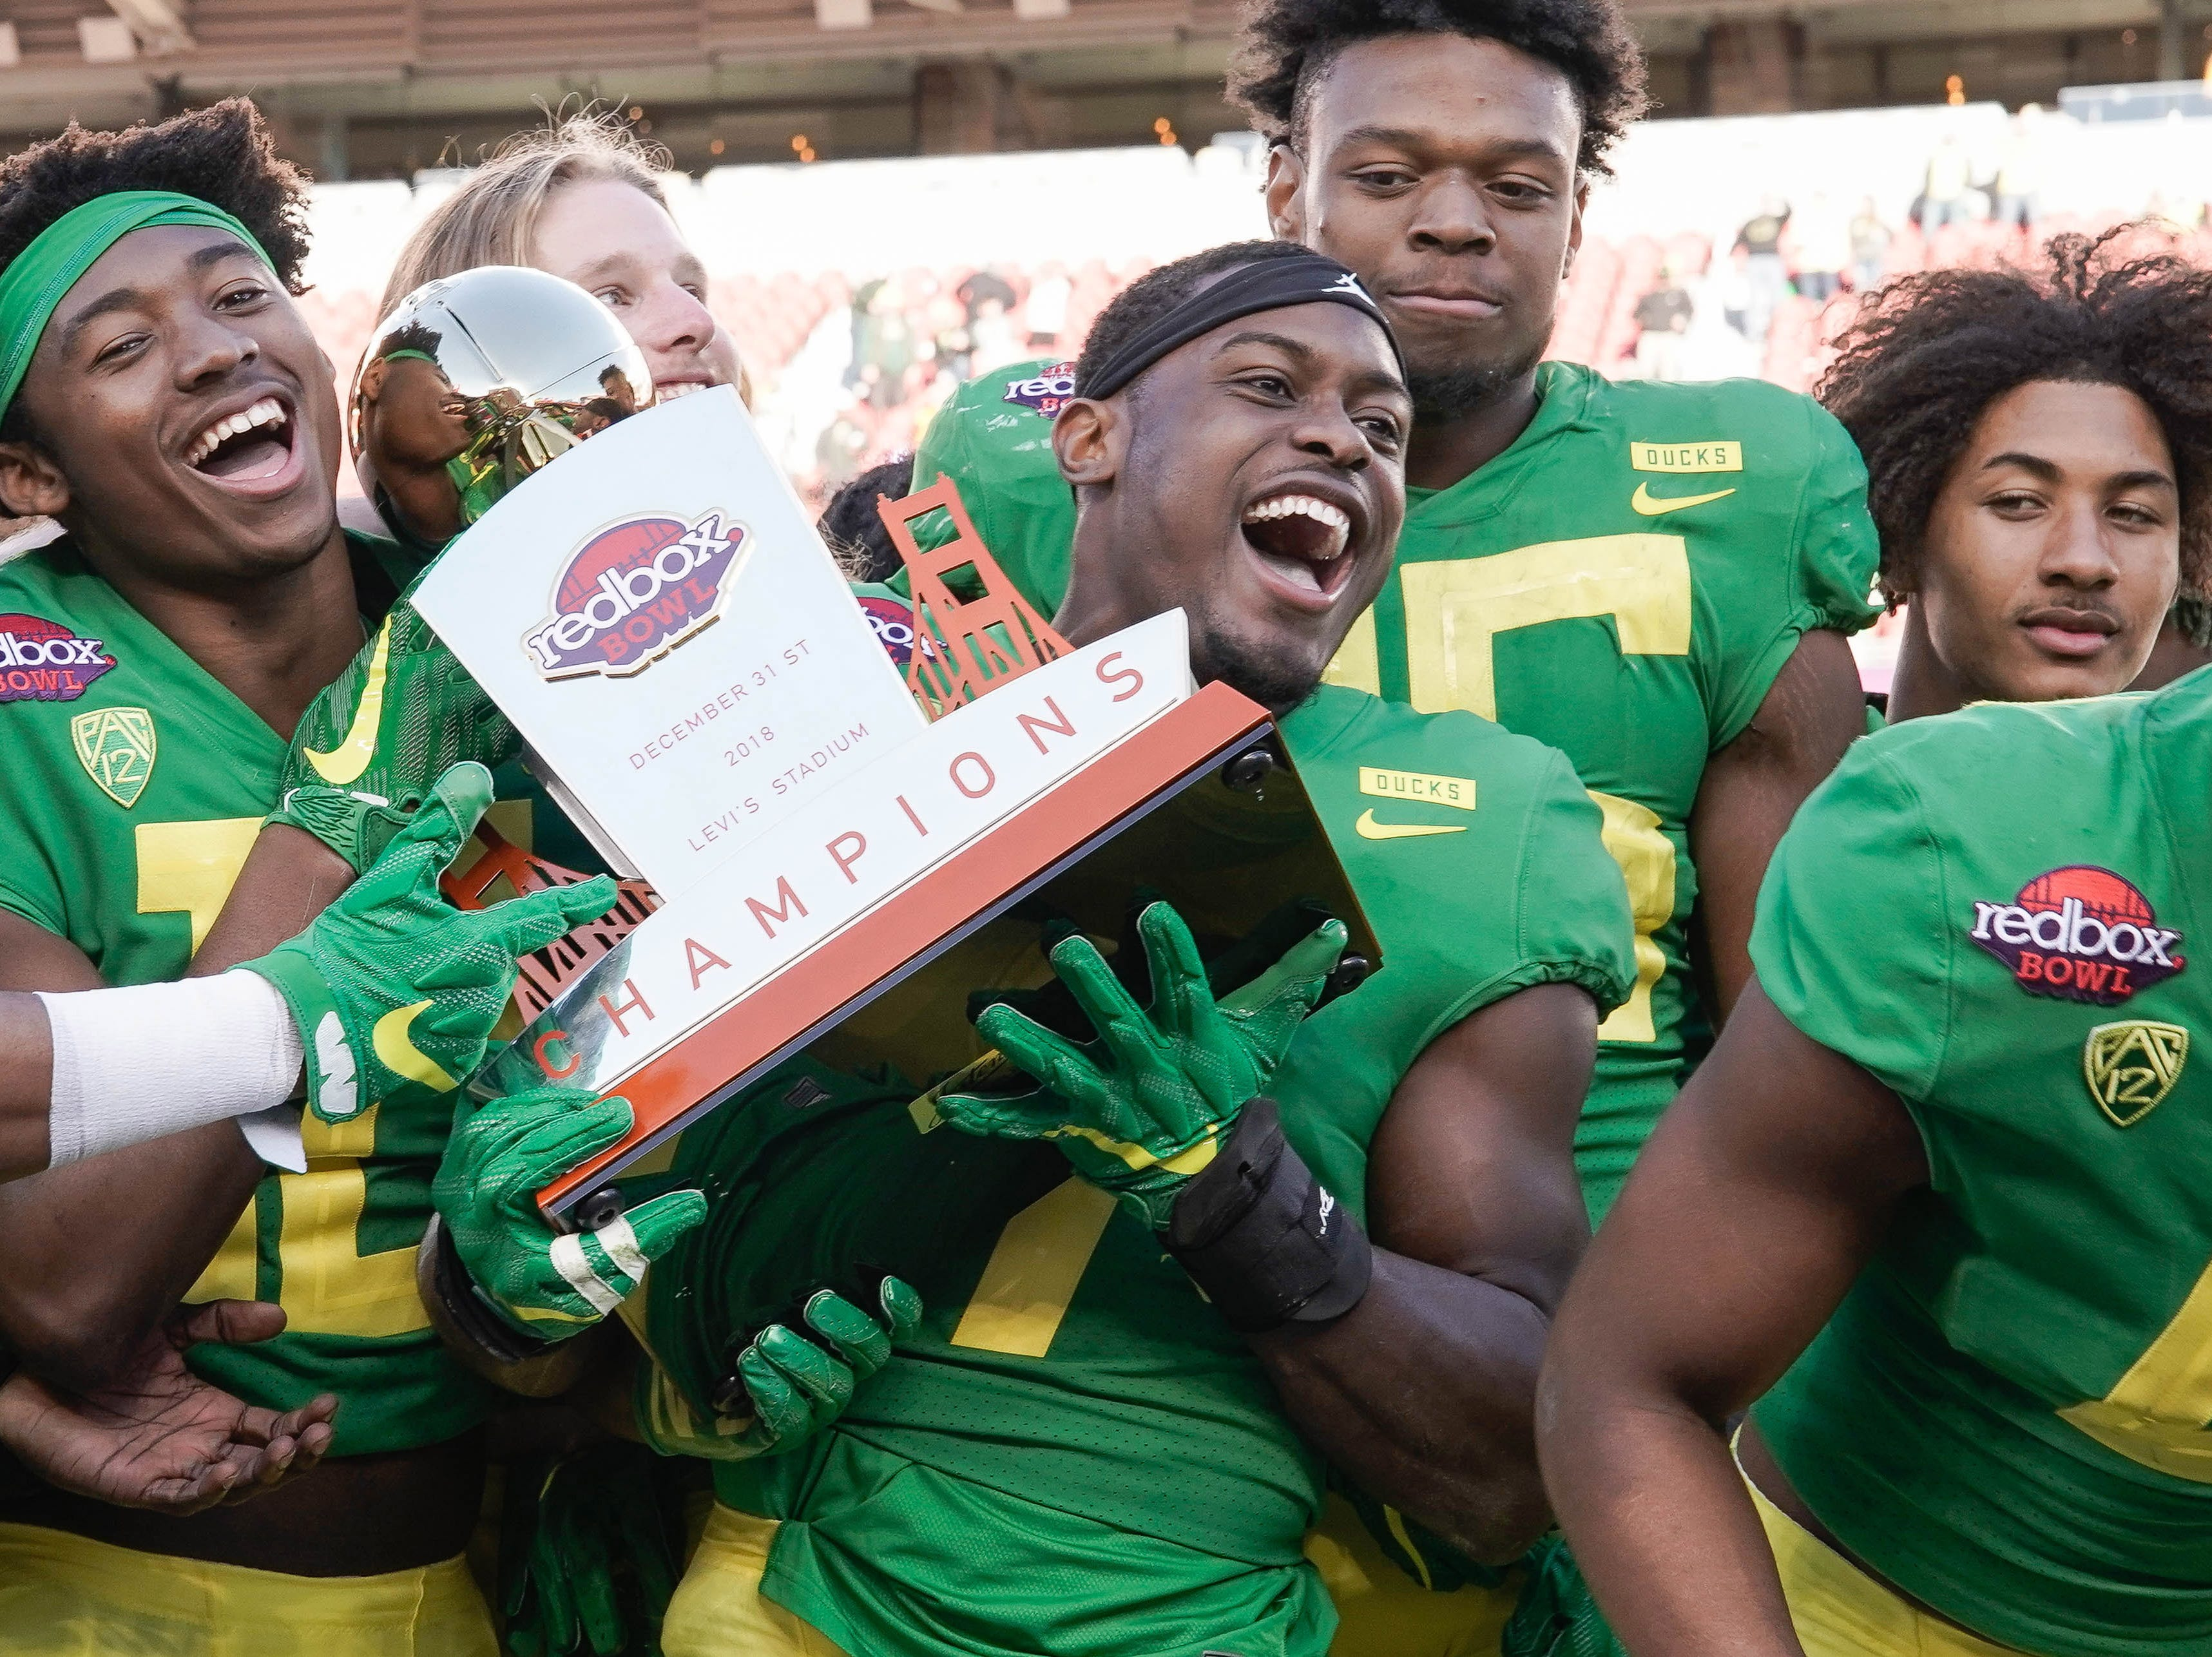 Oregon Ducks safety Ugochukwu Amadi (7) and teammates celebrate with the trophy after defeating the Michigan State Spartans in the Redbox Bowl.